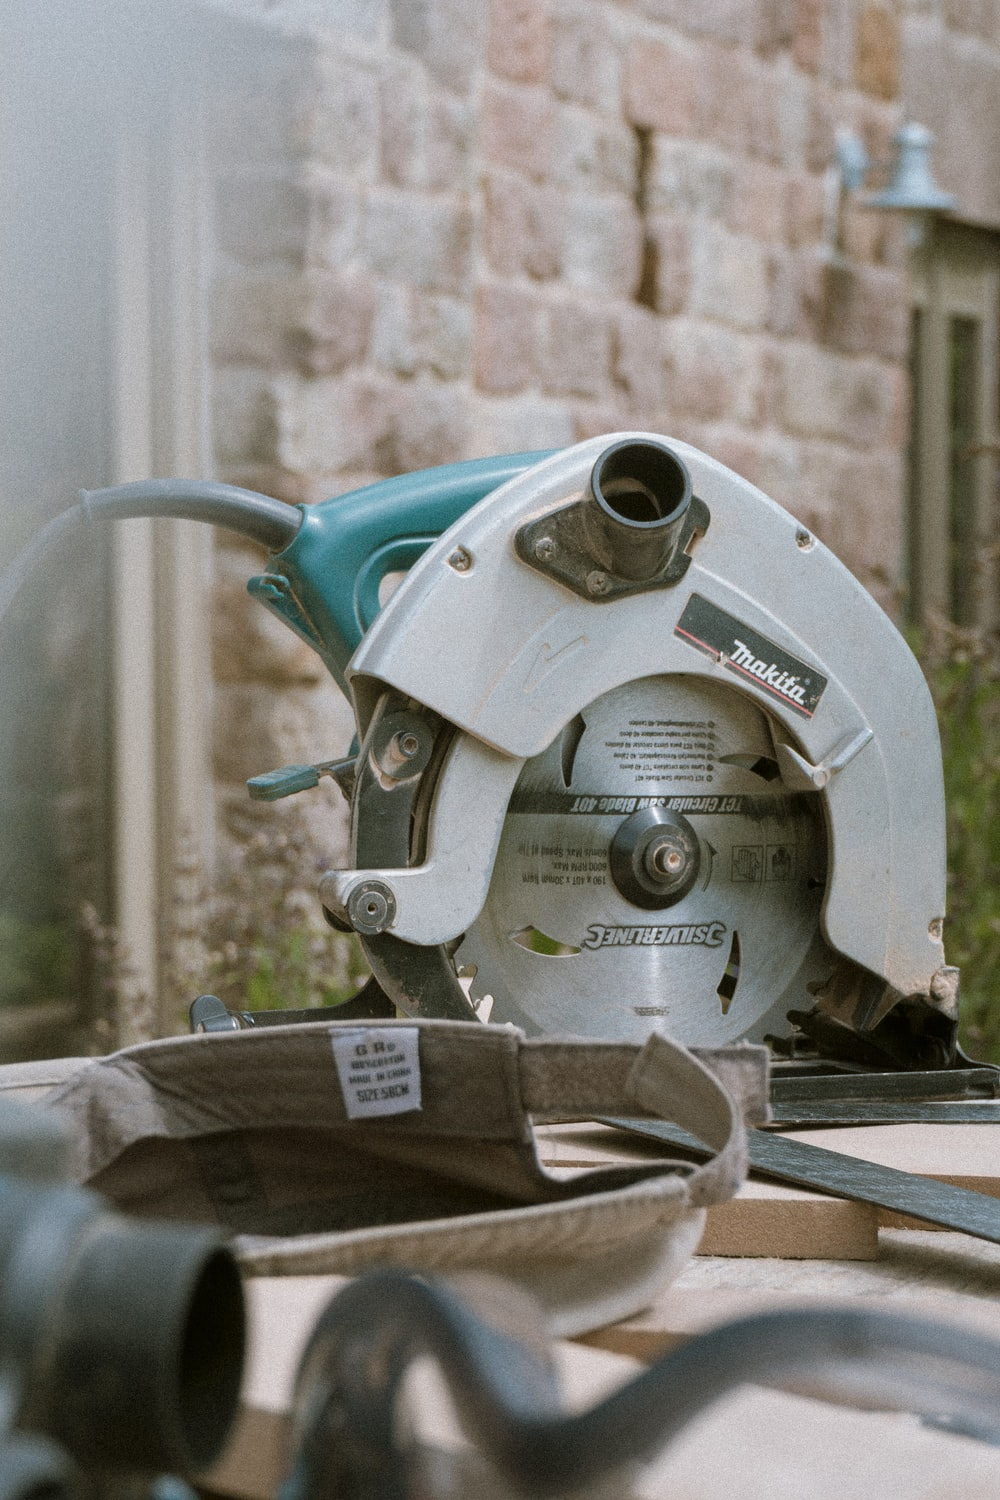 grey and teal Makita miter saw on table outdoors during daytime